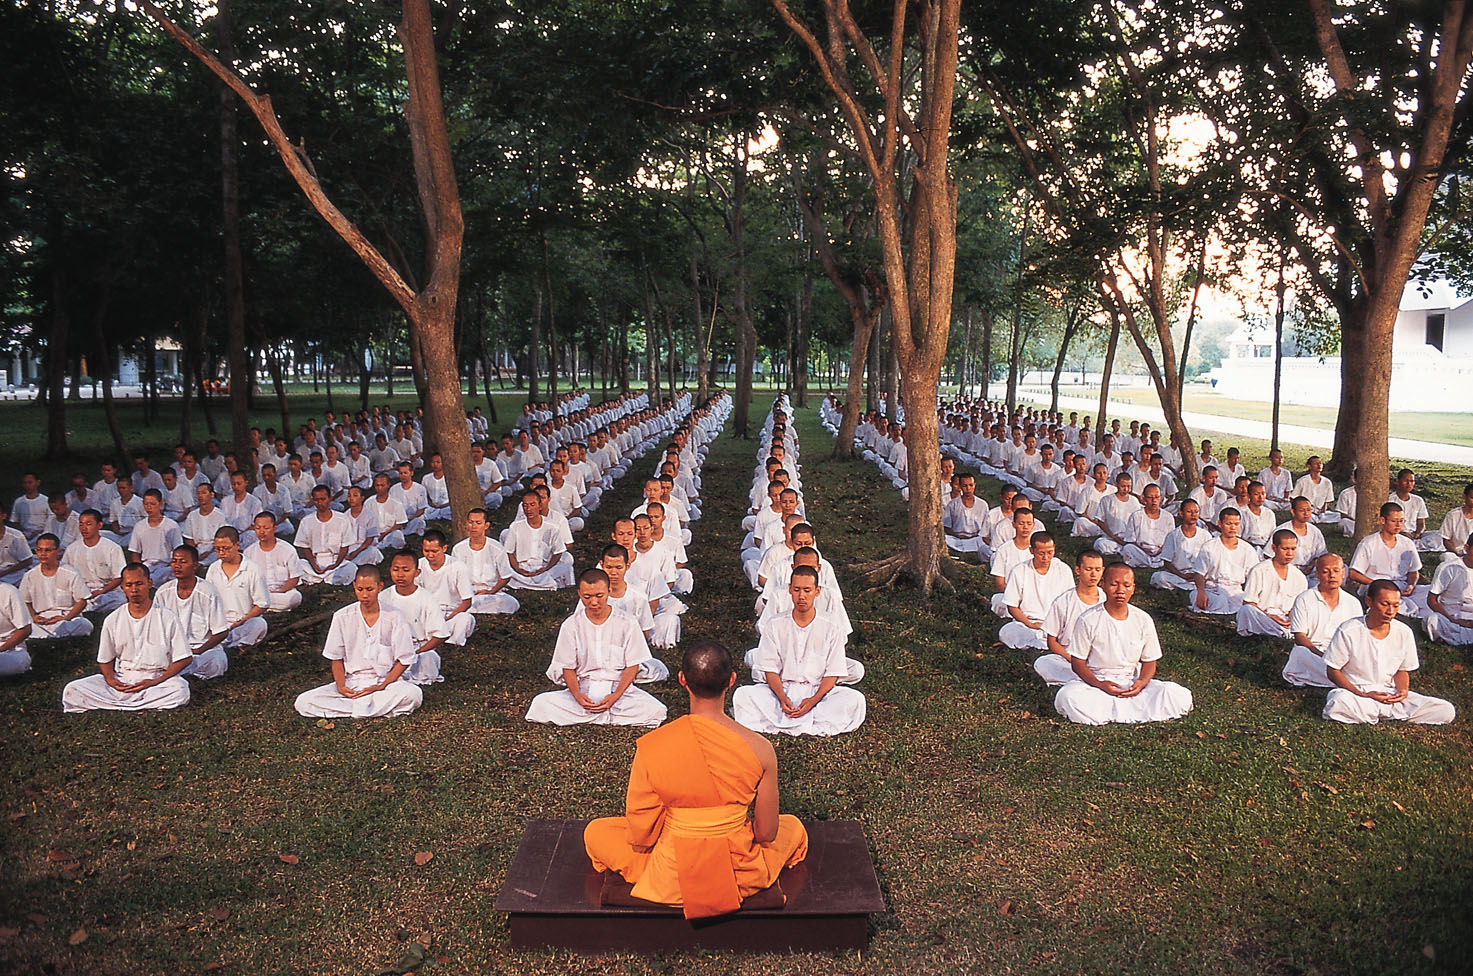 vipassana meditation What is vipassana meditation vipassana, which means to see things as they really are, is one of india's most ancient techniques of meditation.